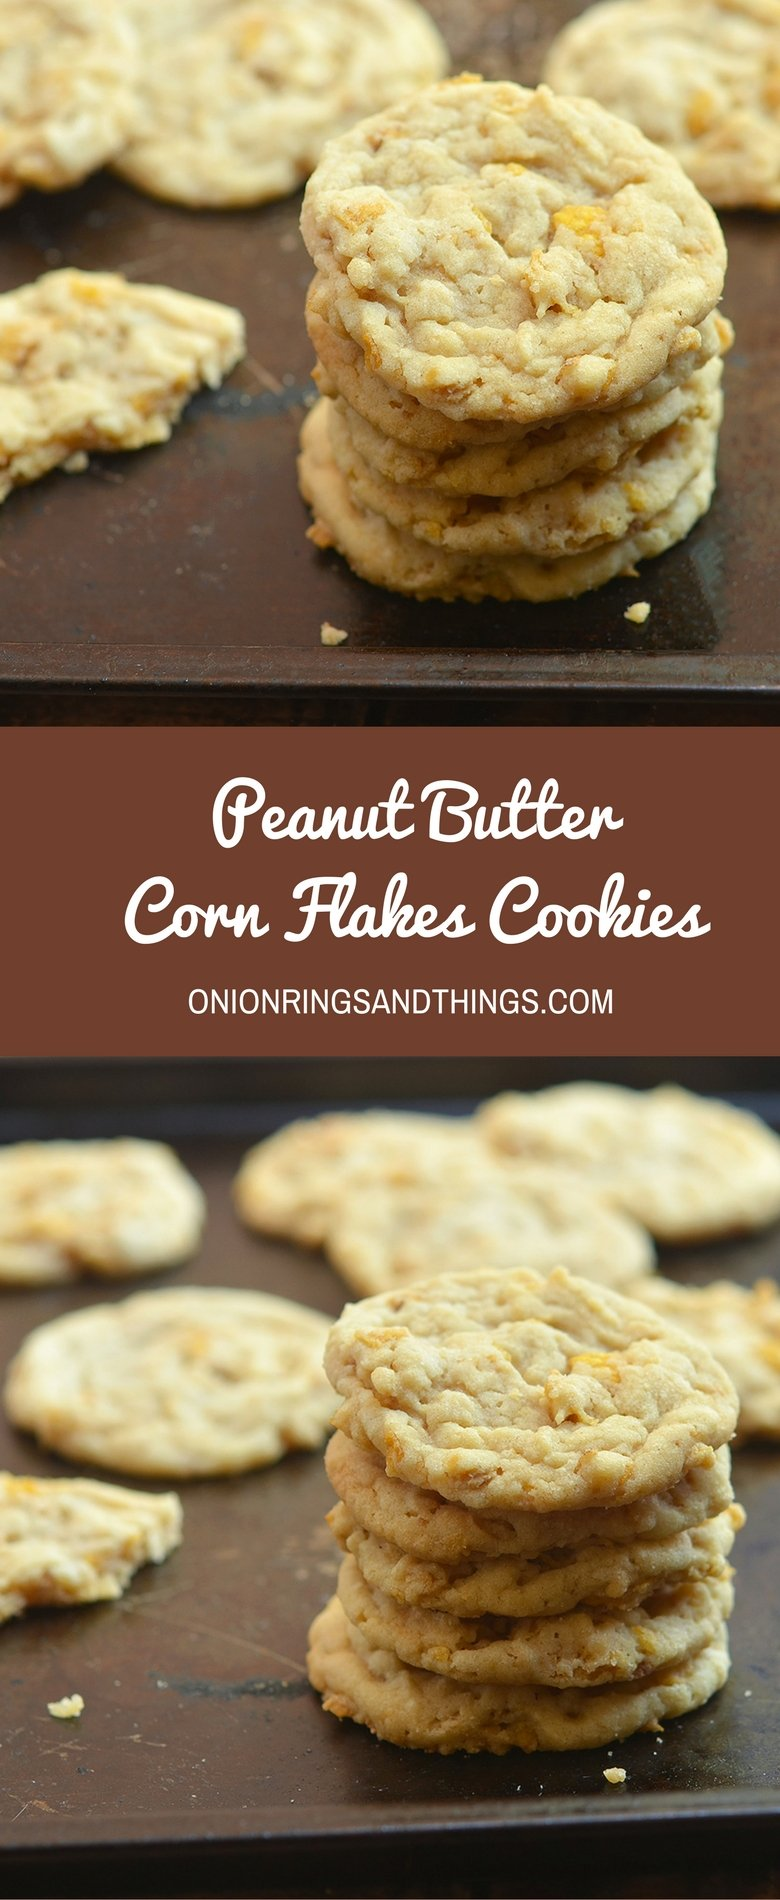 Peanut Butter Corn Flakes Cookies that are a piece of sweet heaven! Crisp, chewy, and loaded with peanut butter flavor and crunchy corn flakes, they are the perfect midday snack or anytime treat